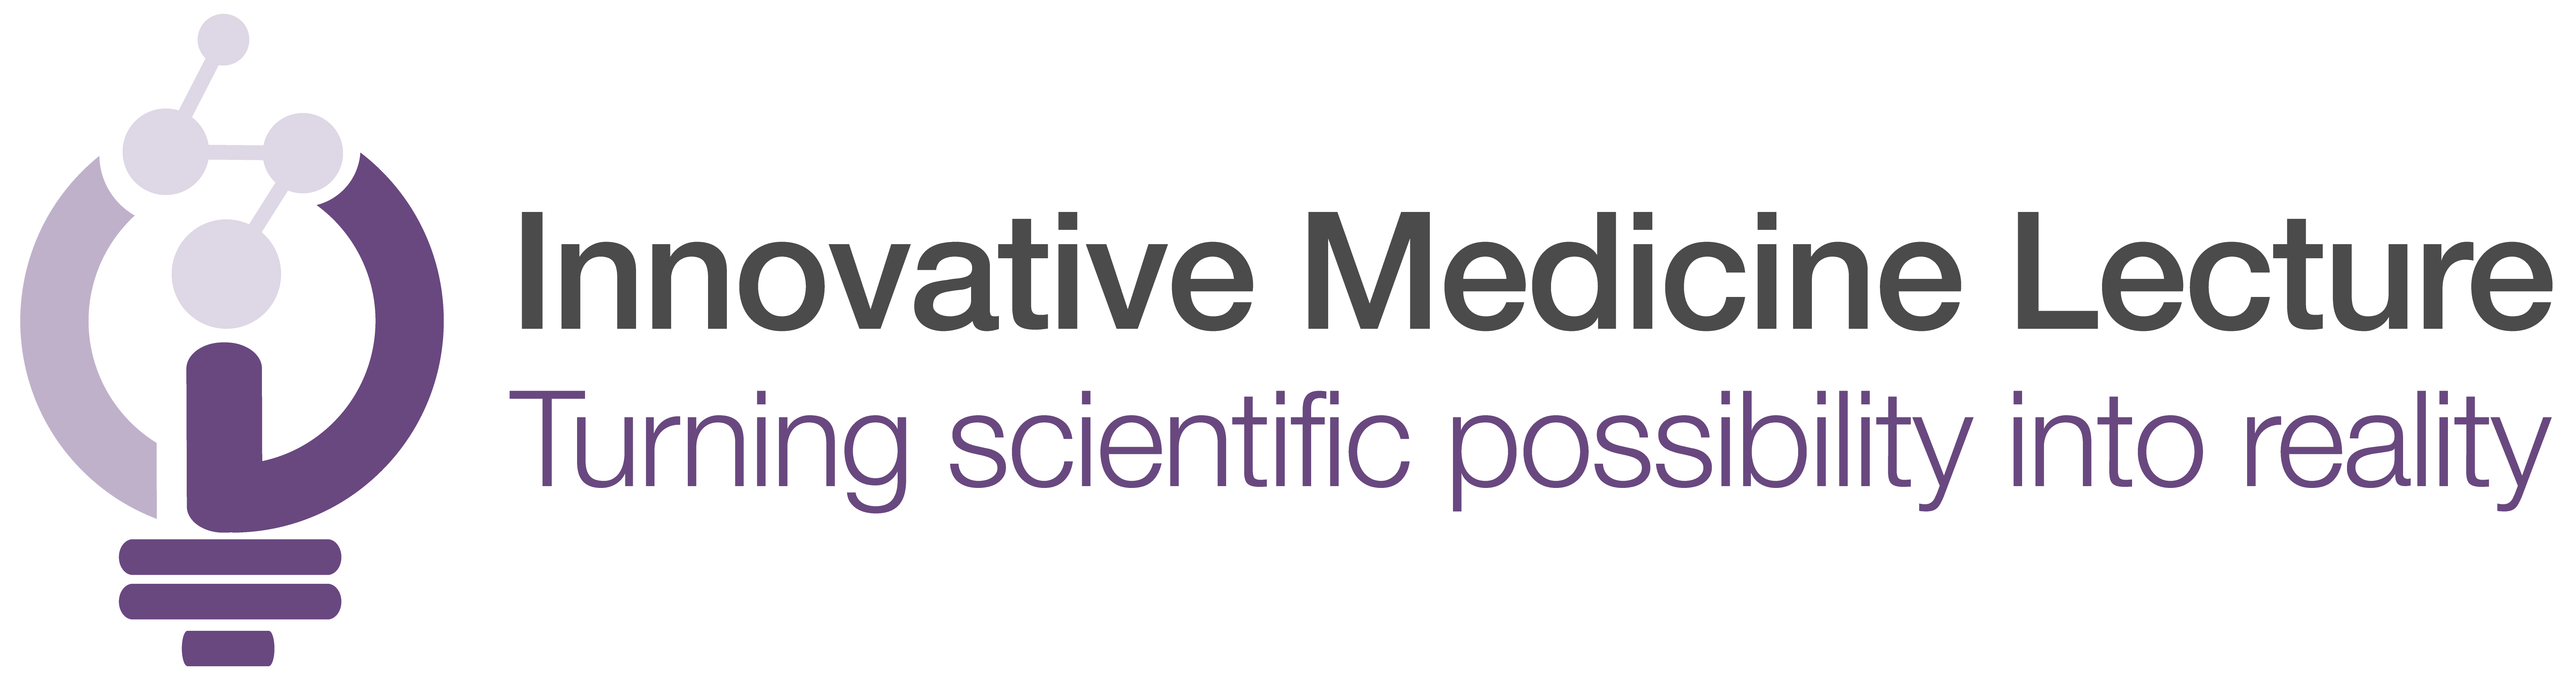 Innovative Medicine Lecture Logo